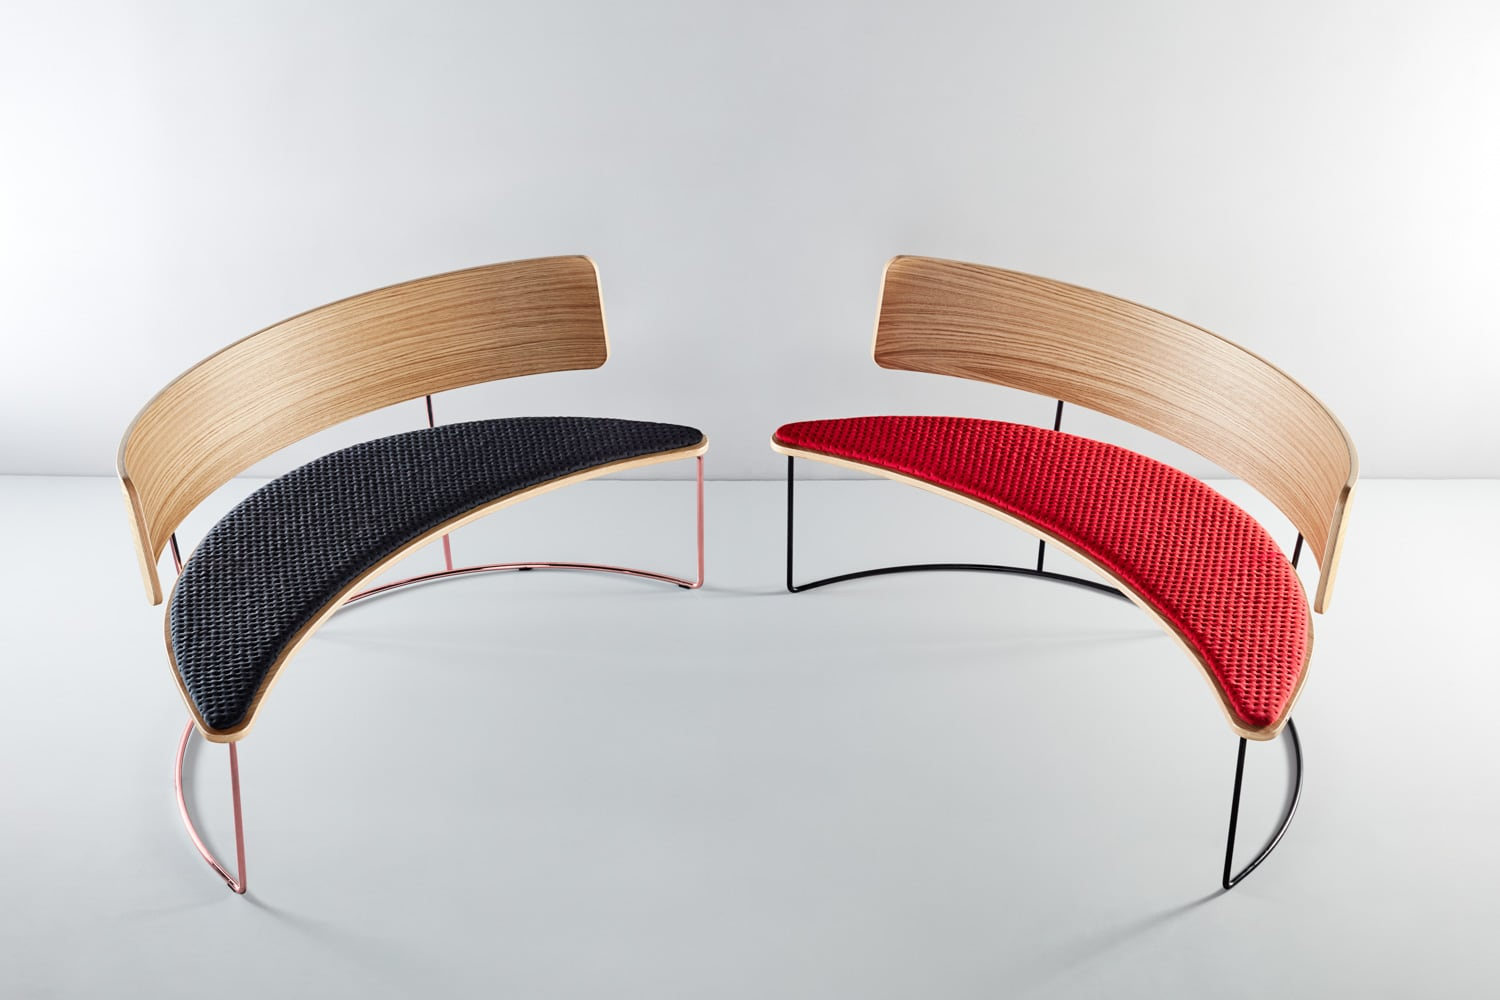 bomerang-bench-hospitality-design-furniture-product